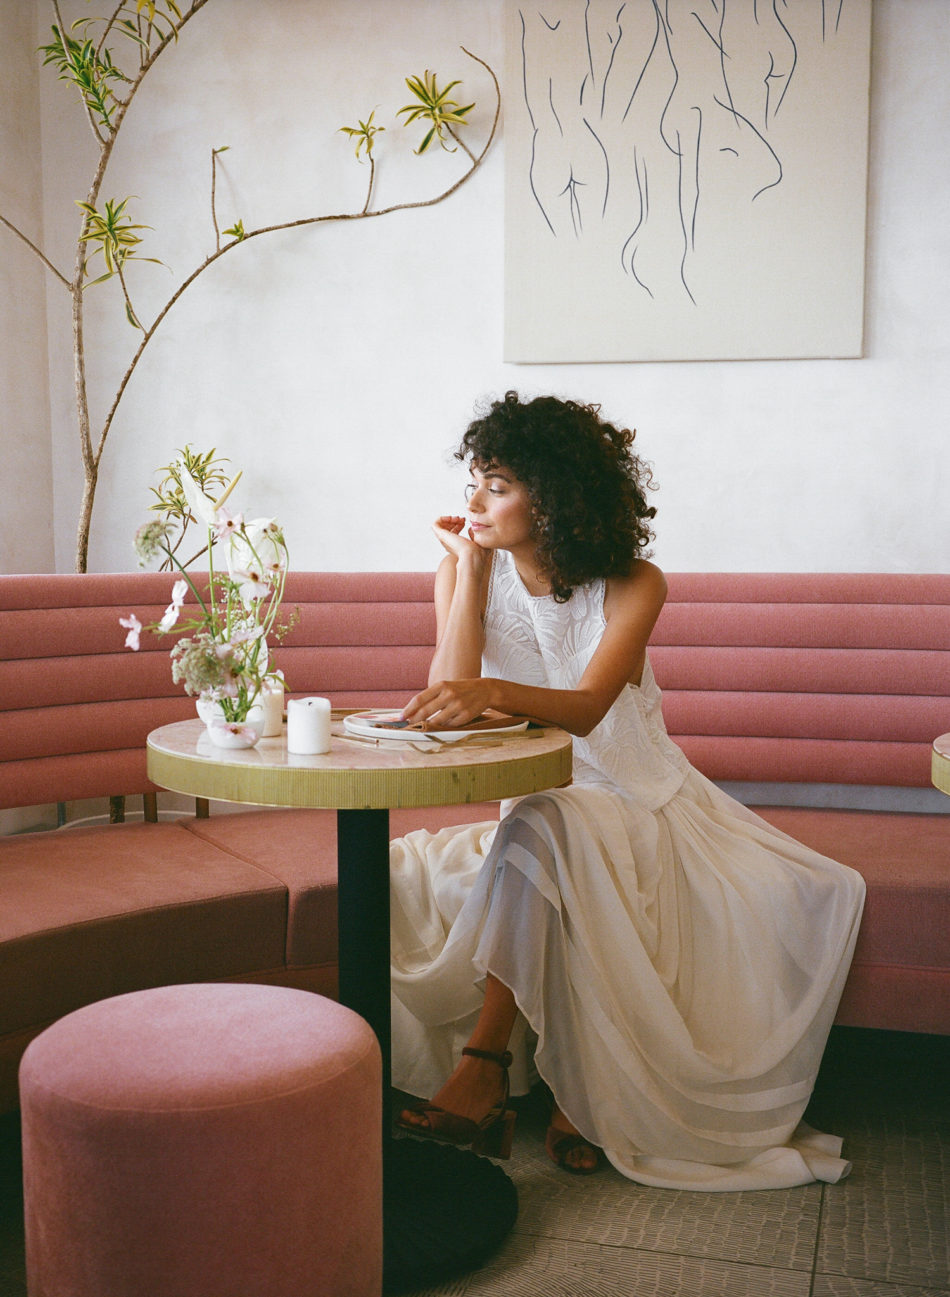 Photoshoot inspiration mariage moderne et simple, restaurant, california